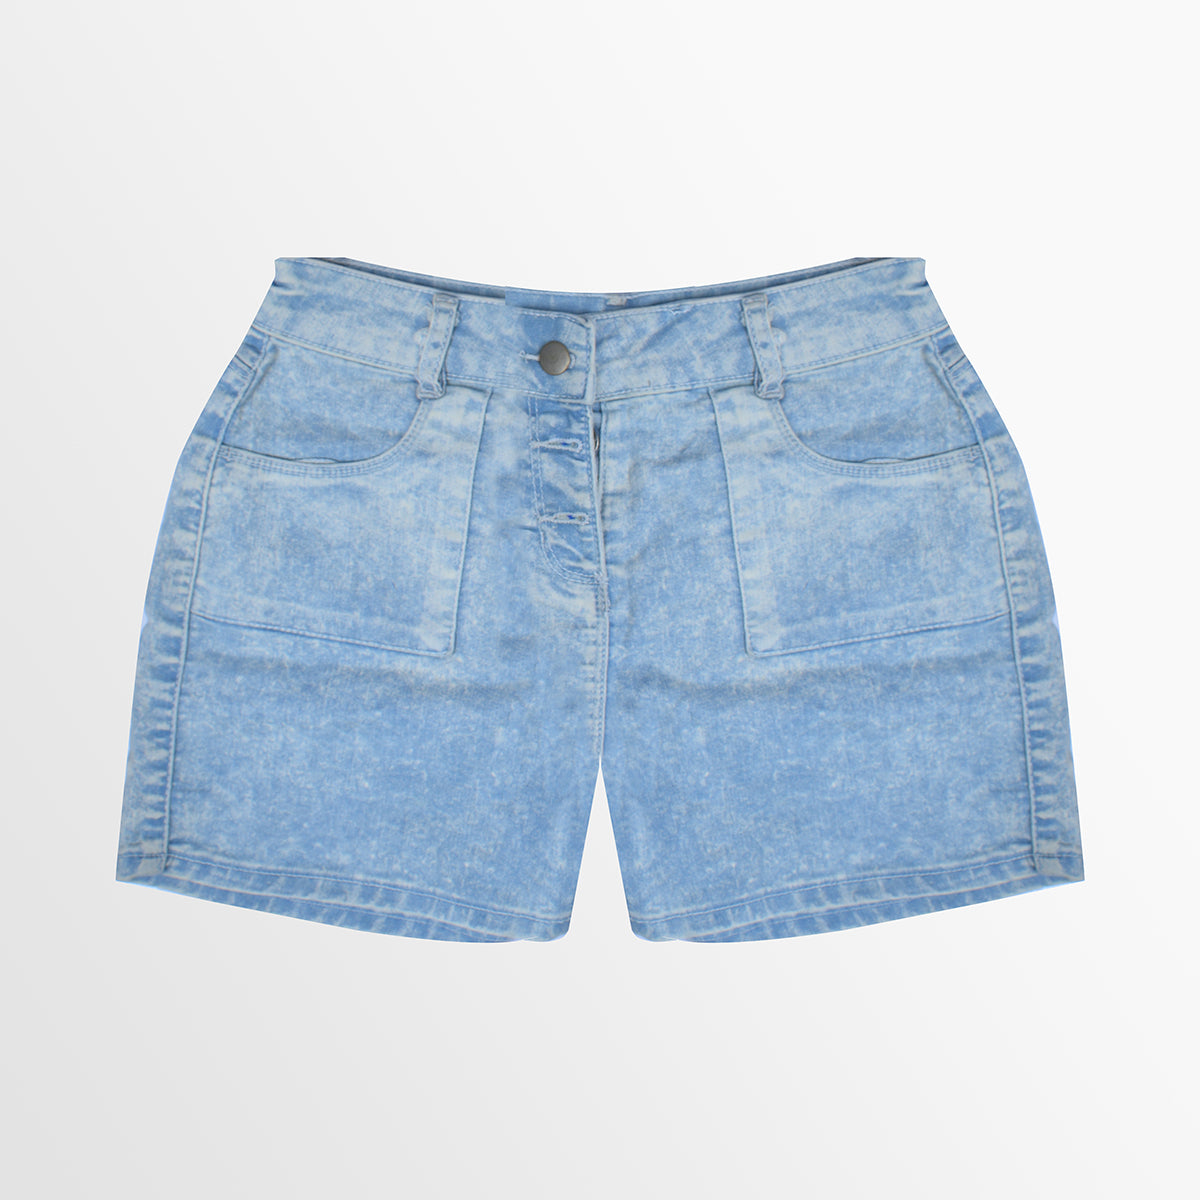 New Look Denim Short For Ladies-Dirty Blue Faded-NA8790